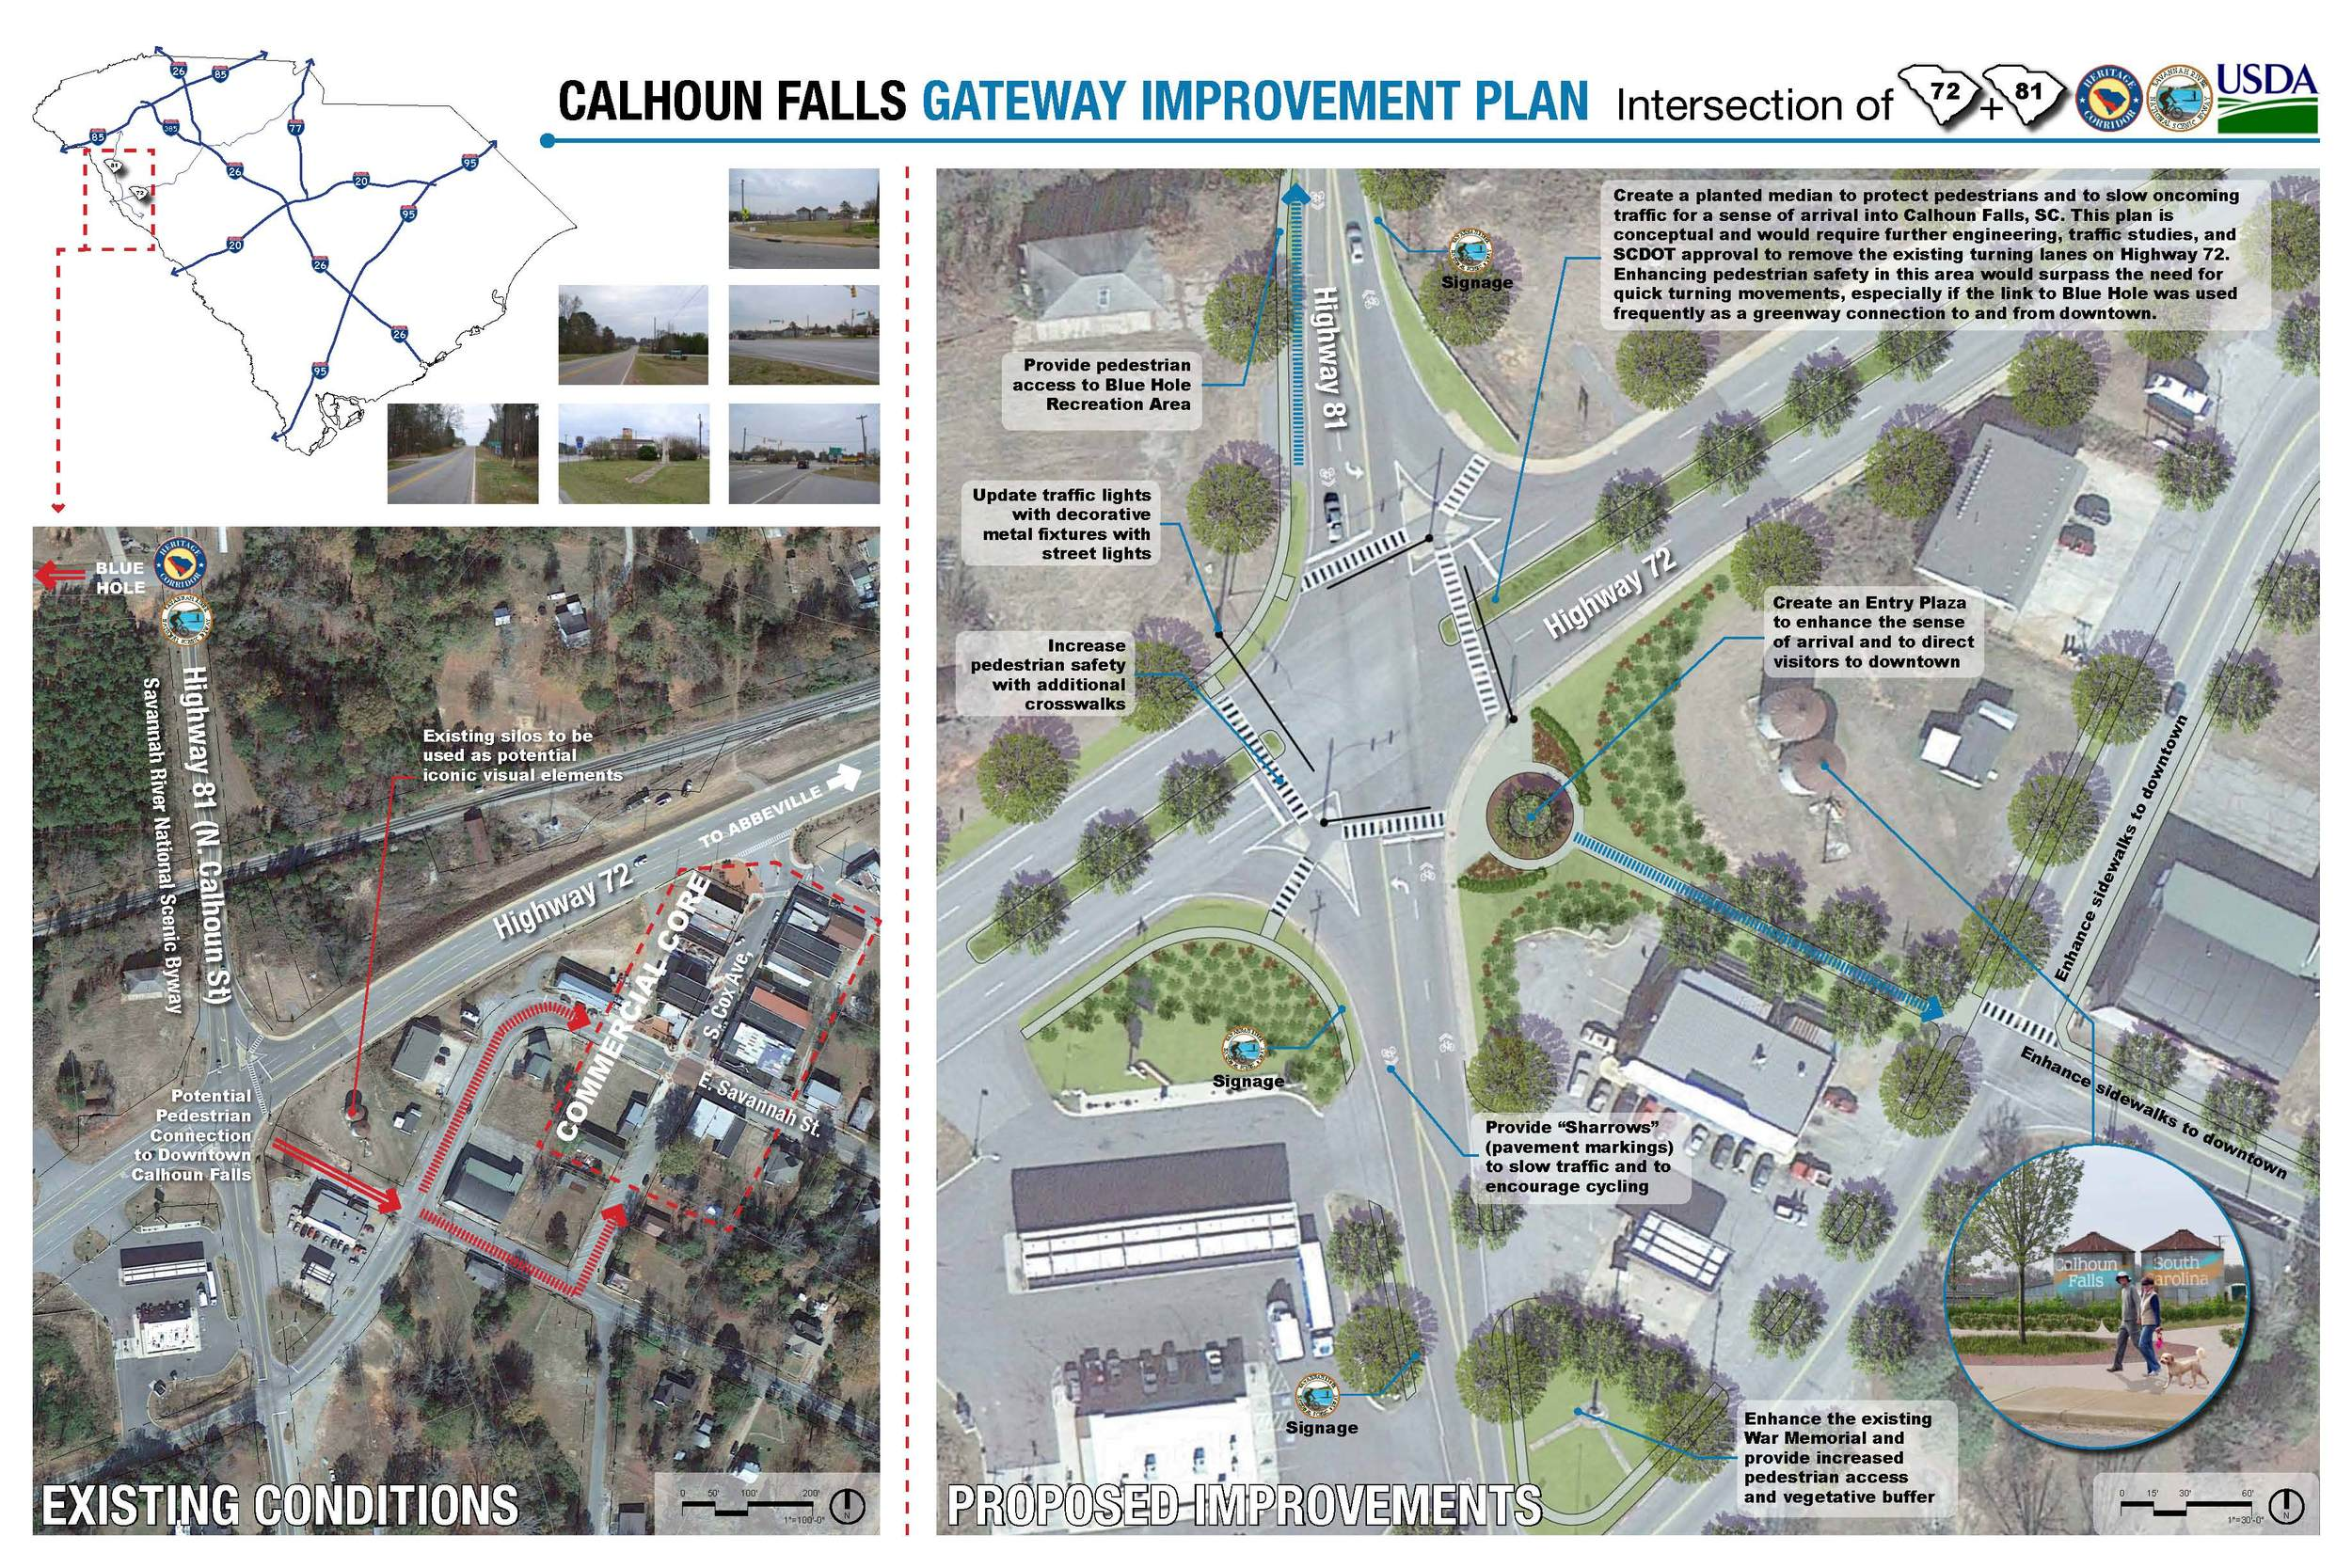 CalhounFalls-Intersection-Plan-091014-small_Page_2.jpg